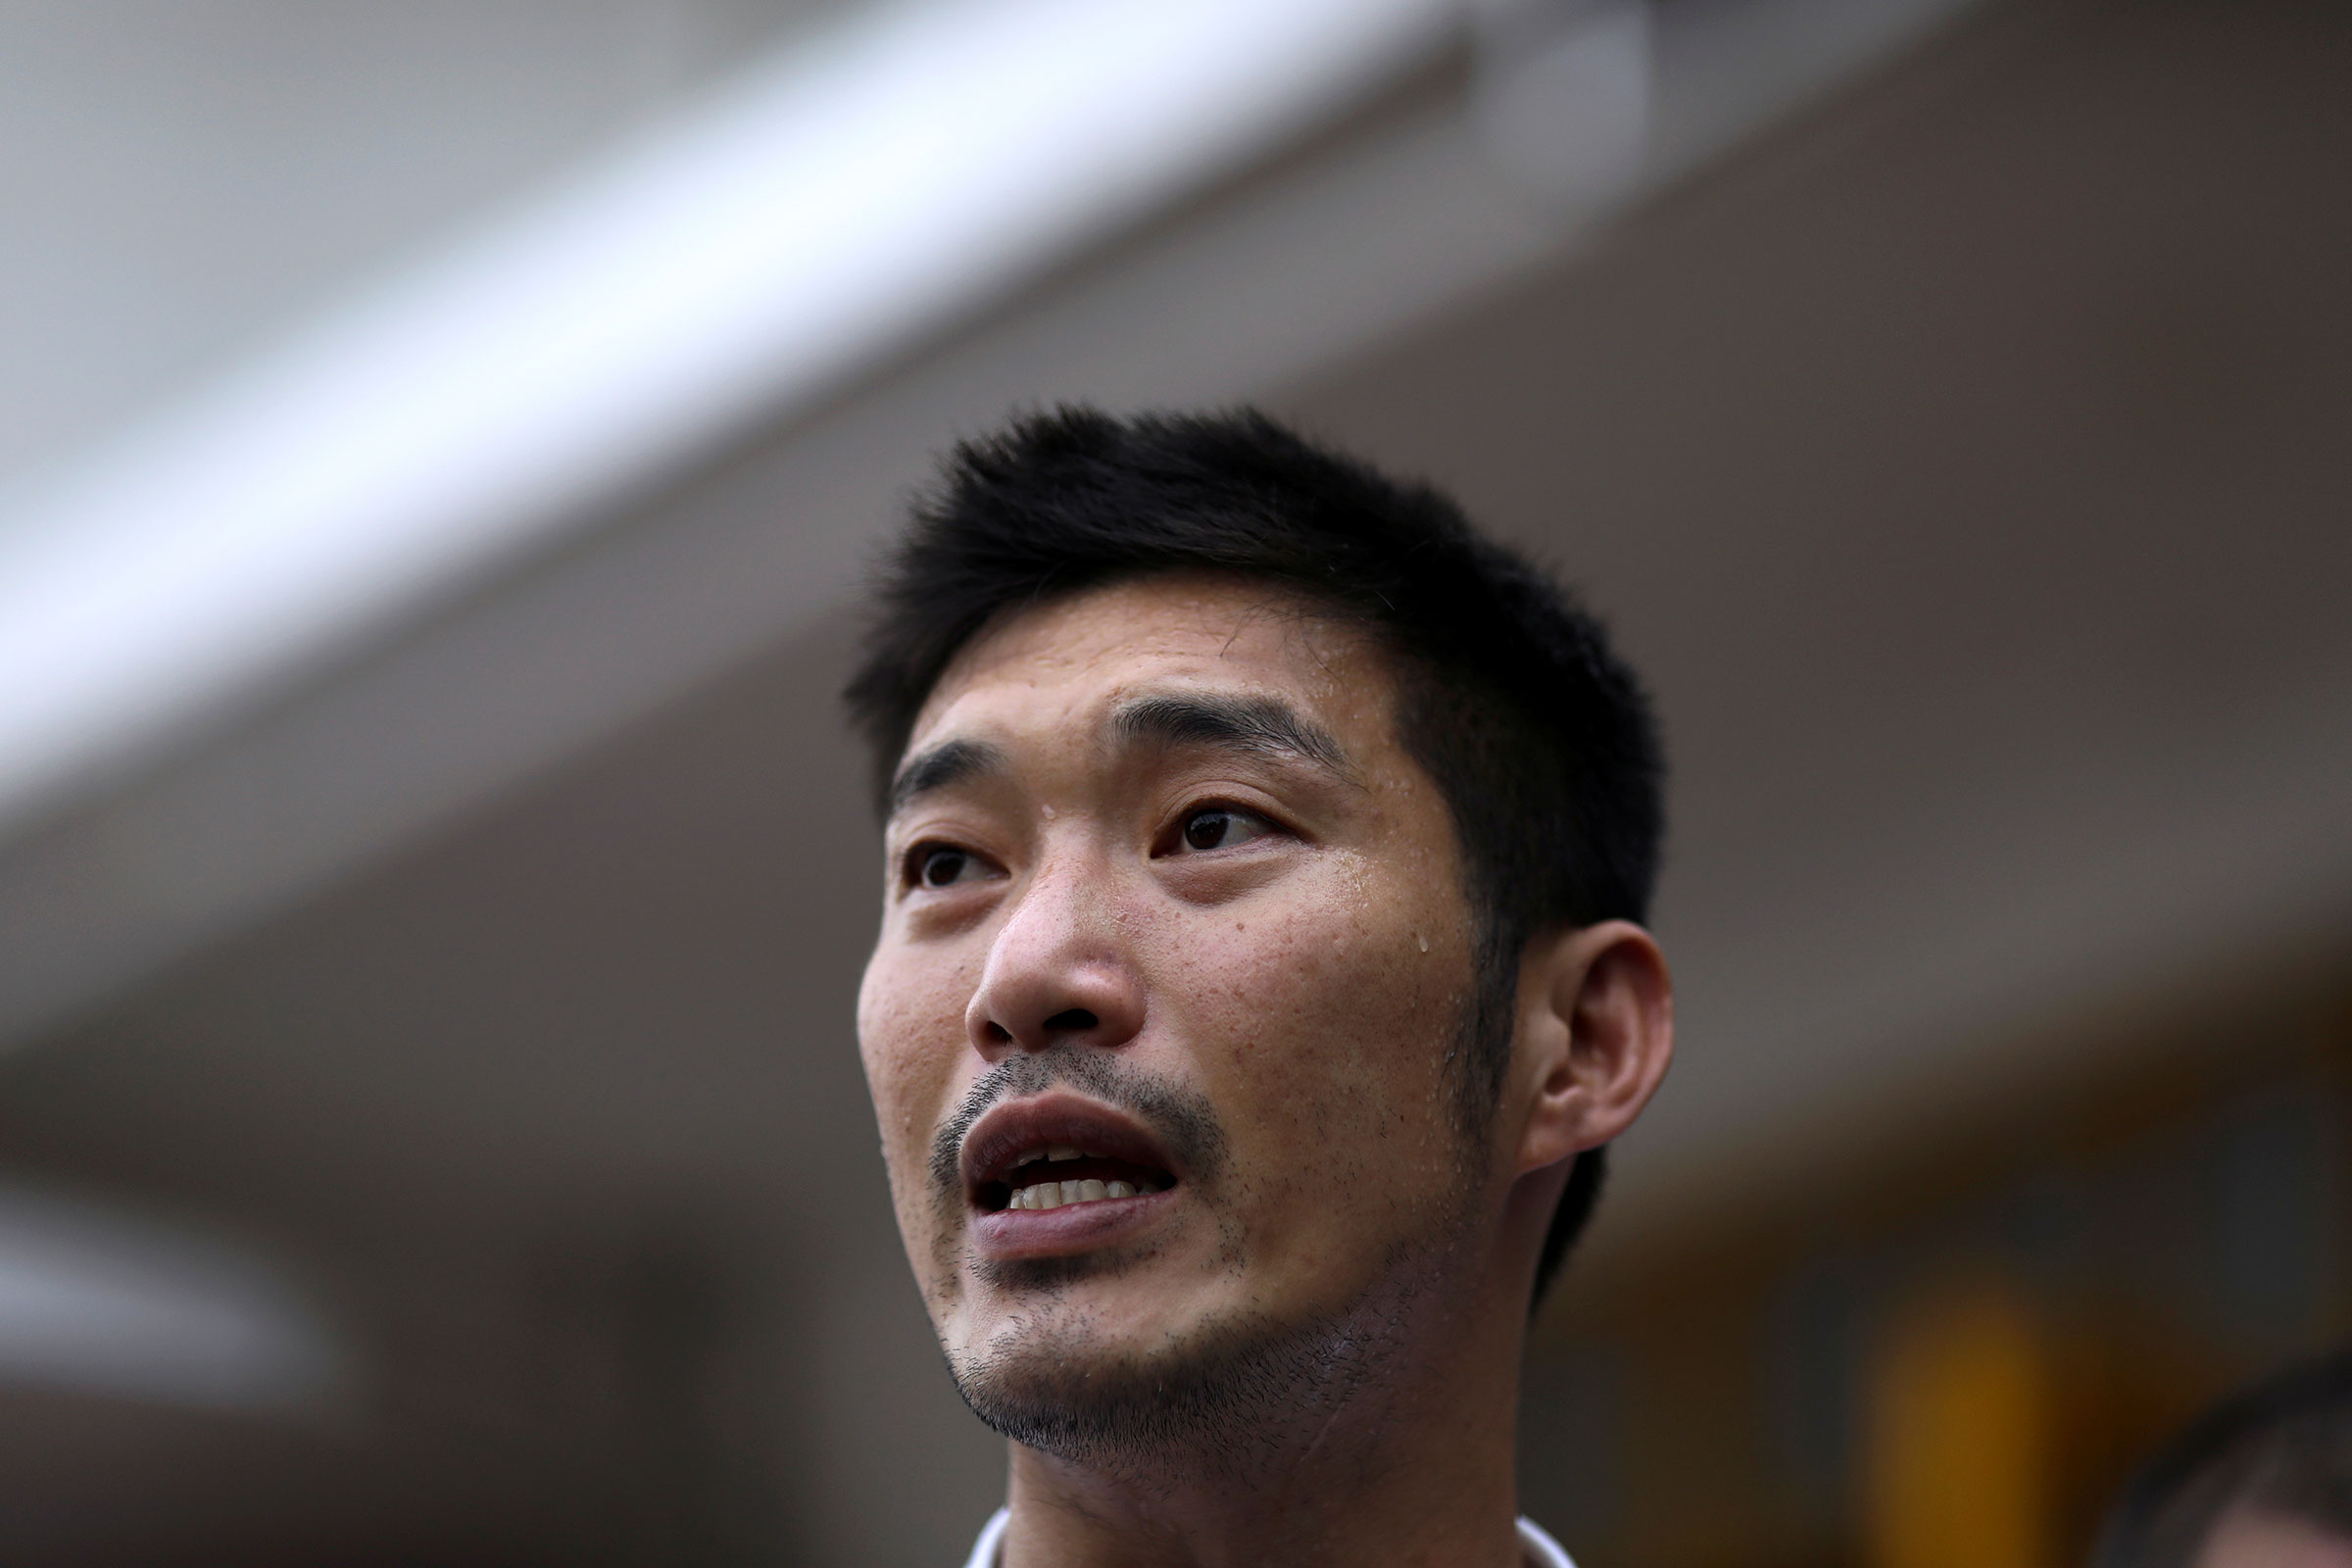 Thailand's opposition Future Forward Party leader Thanathorn Juangroongruangkit speaks before he reports to a Bangkok police station to hear charges filed against him for organizing the country's biggest protest since the 2014 coup, in Thailand, on Jan. 10, 2020.